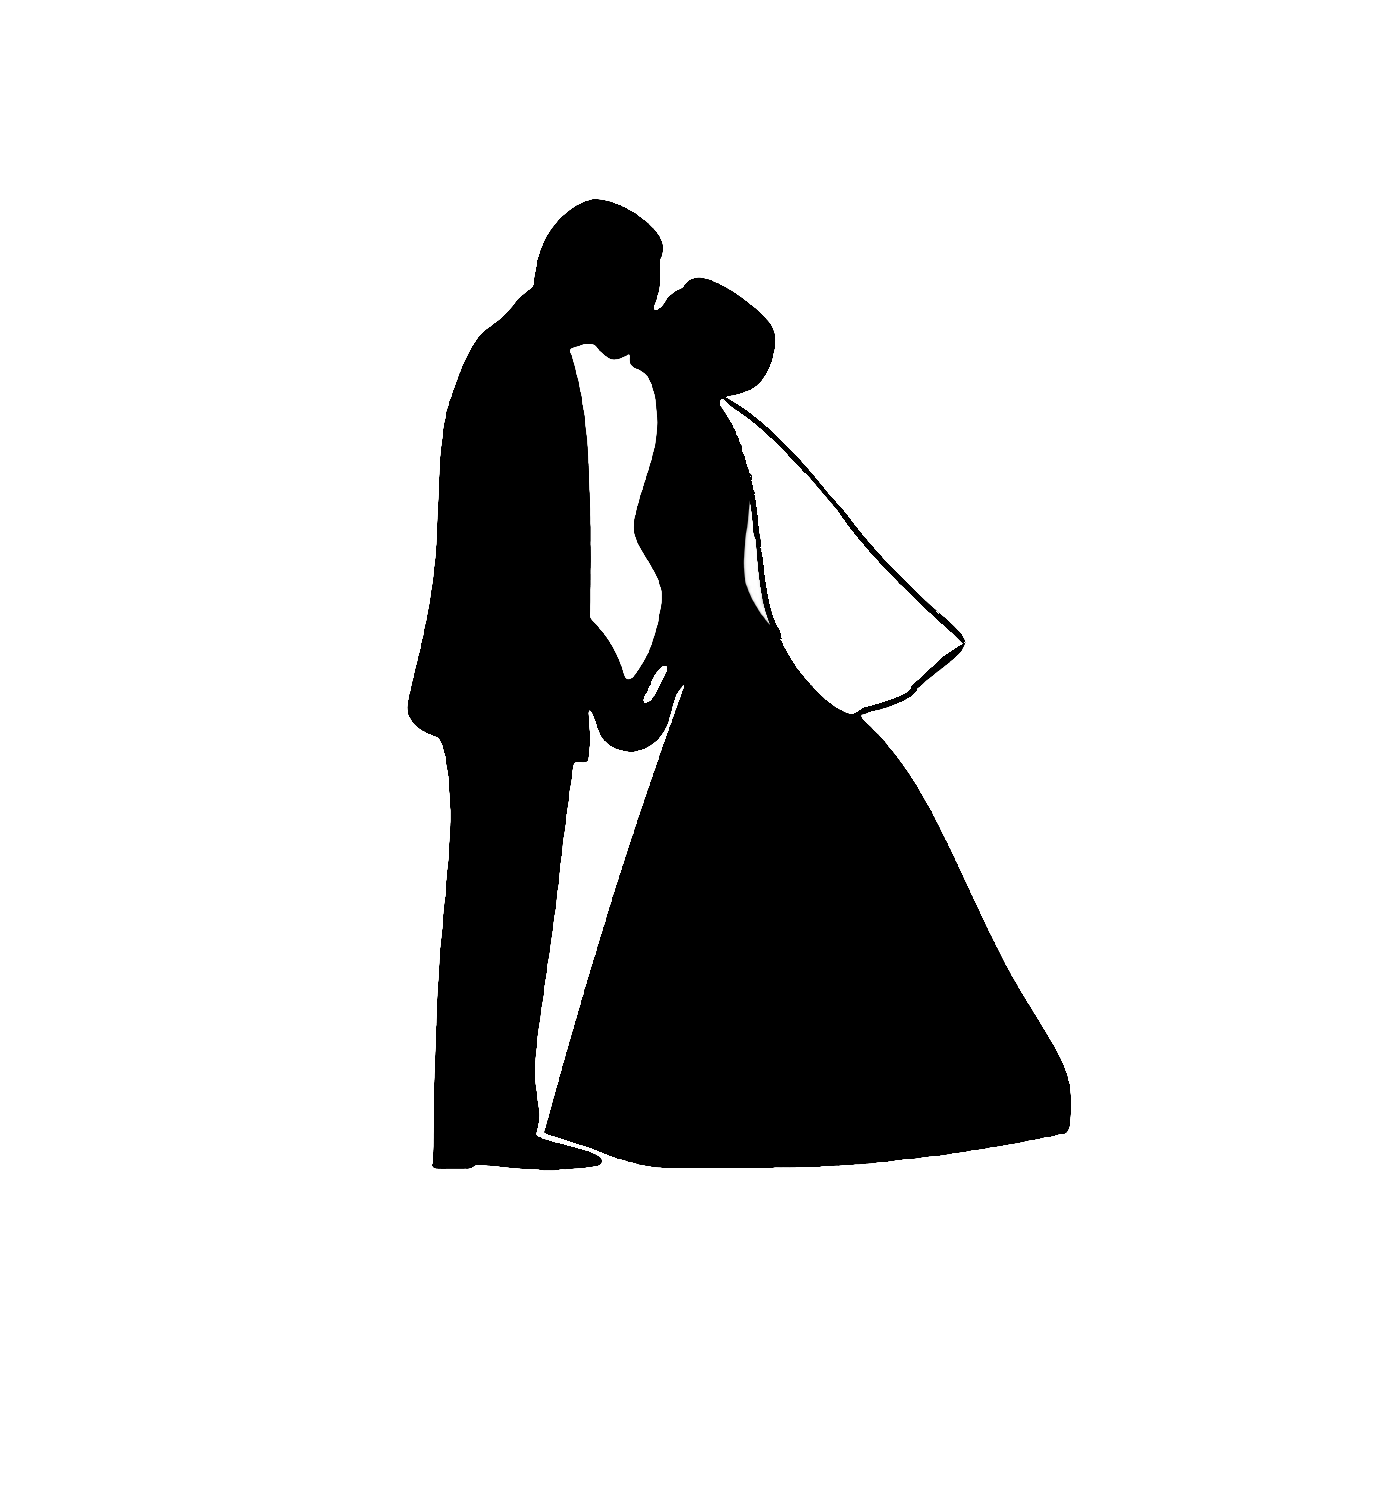 Kiss | Free Images at Clker.com - vector clip art online, royalty free ...